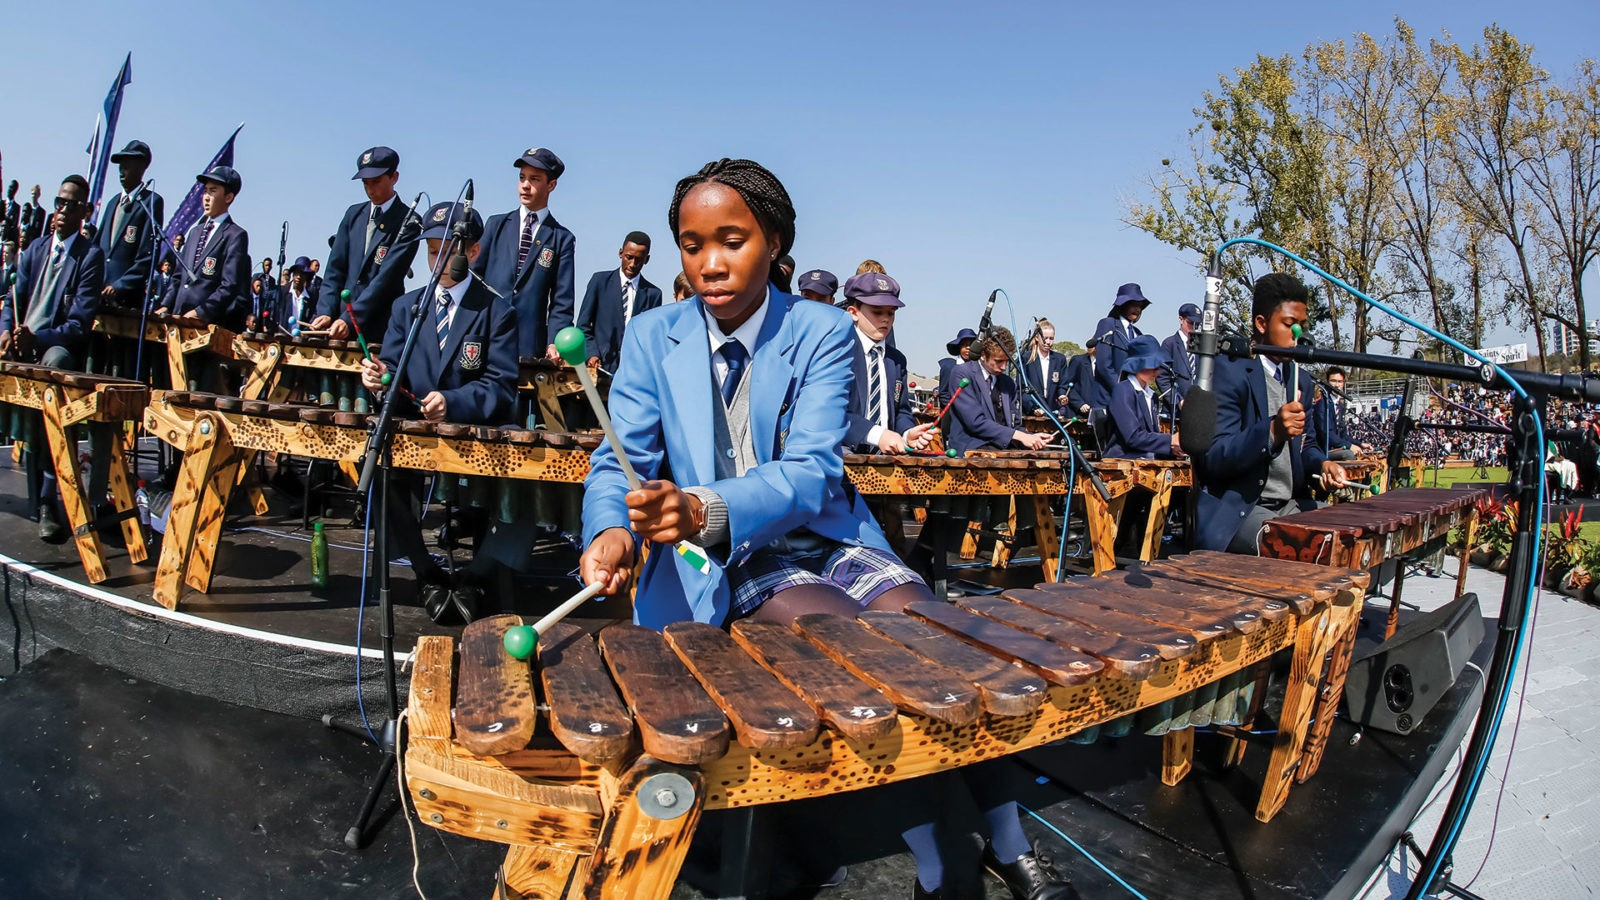 Schools performing with African muscial instruments